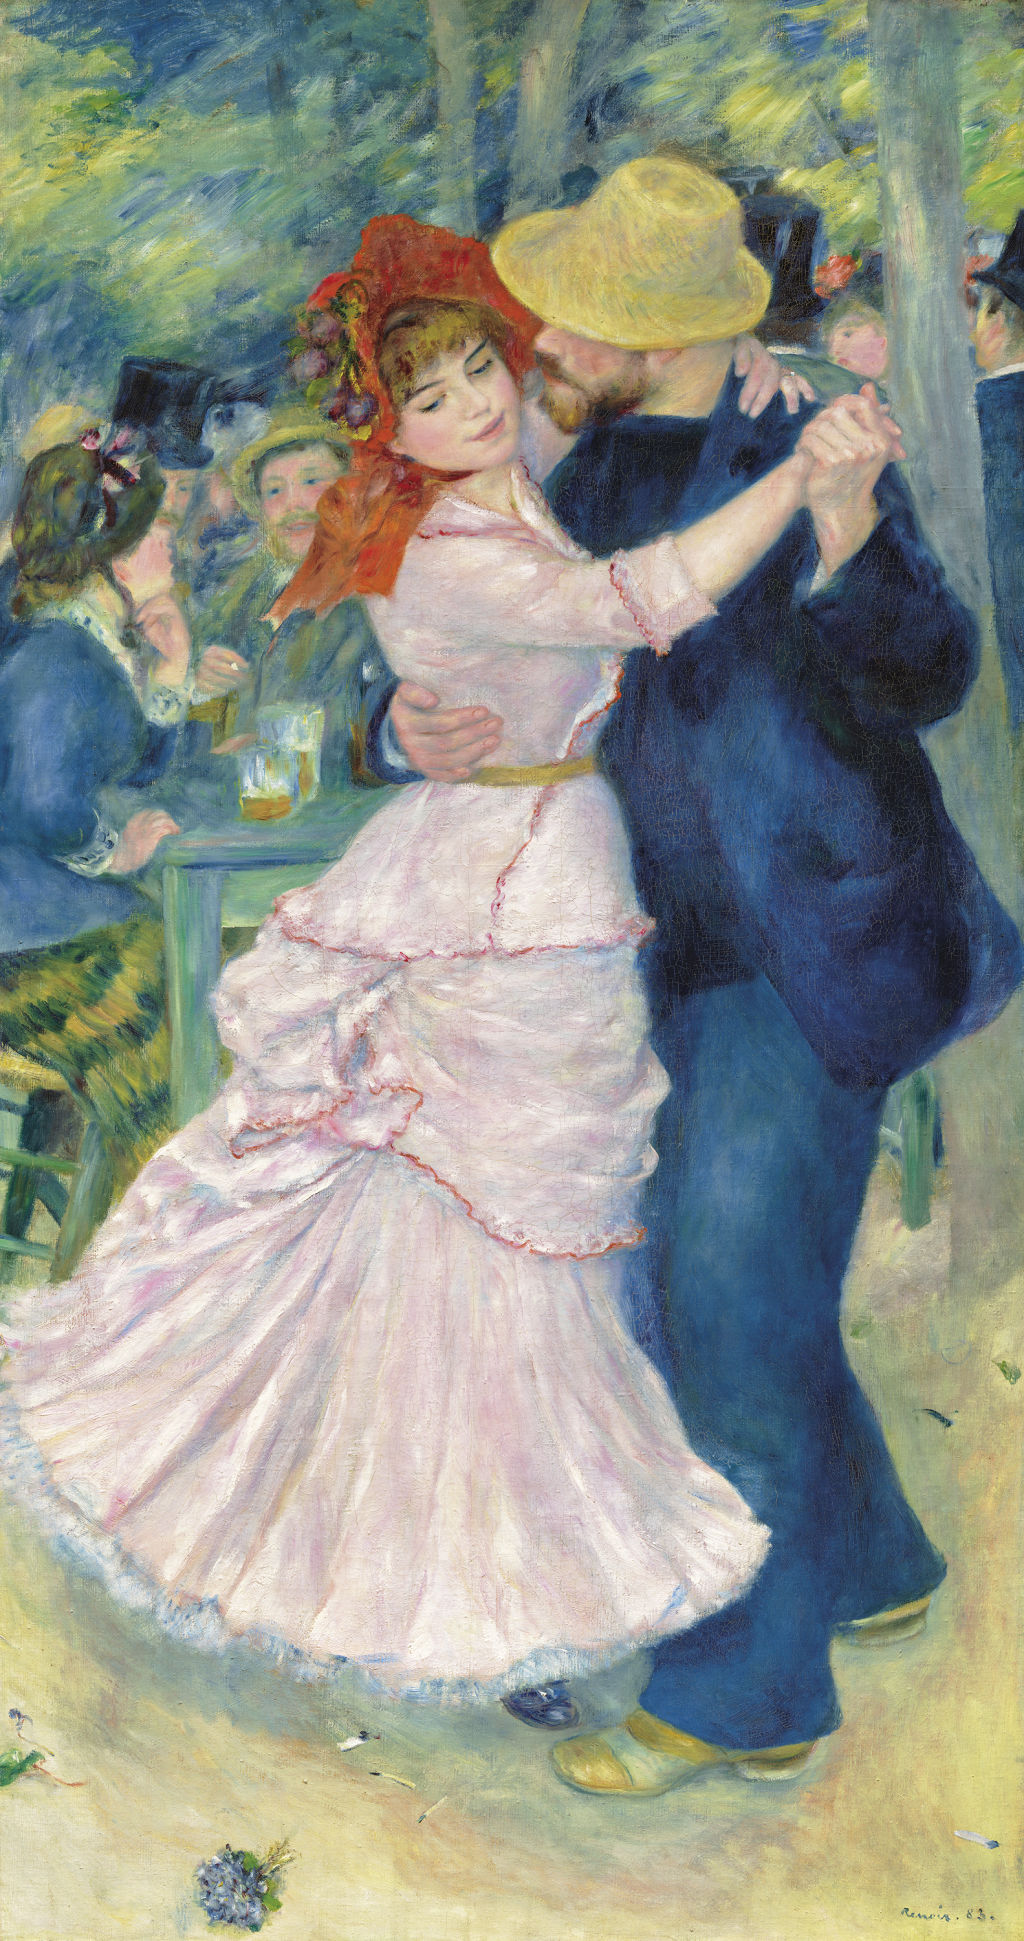 Pierre-Auguste Renoir   French 1841–1919  Dance at Bougival 1883   oil on canvas  181.9 x 98.1 cm